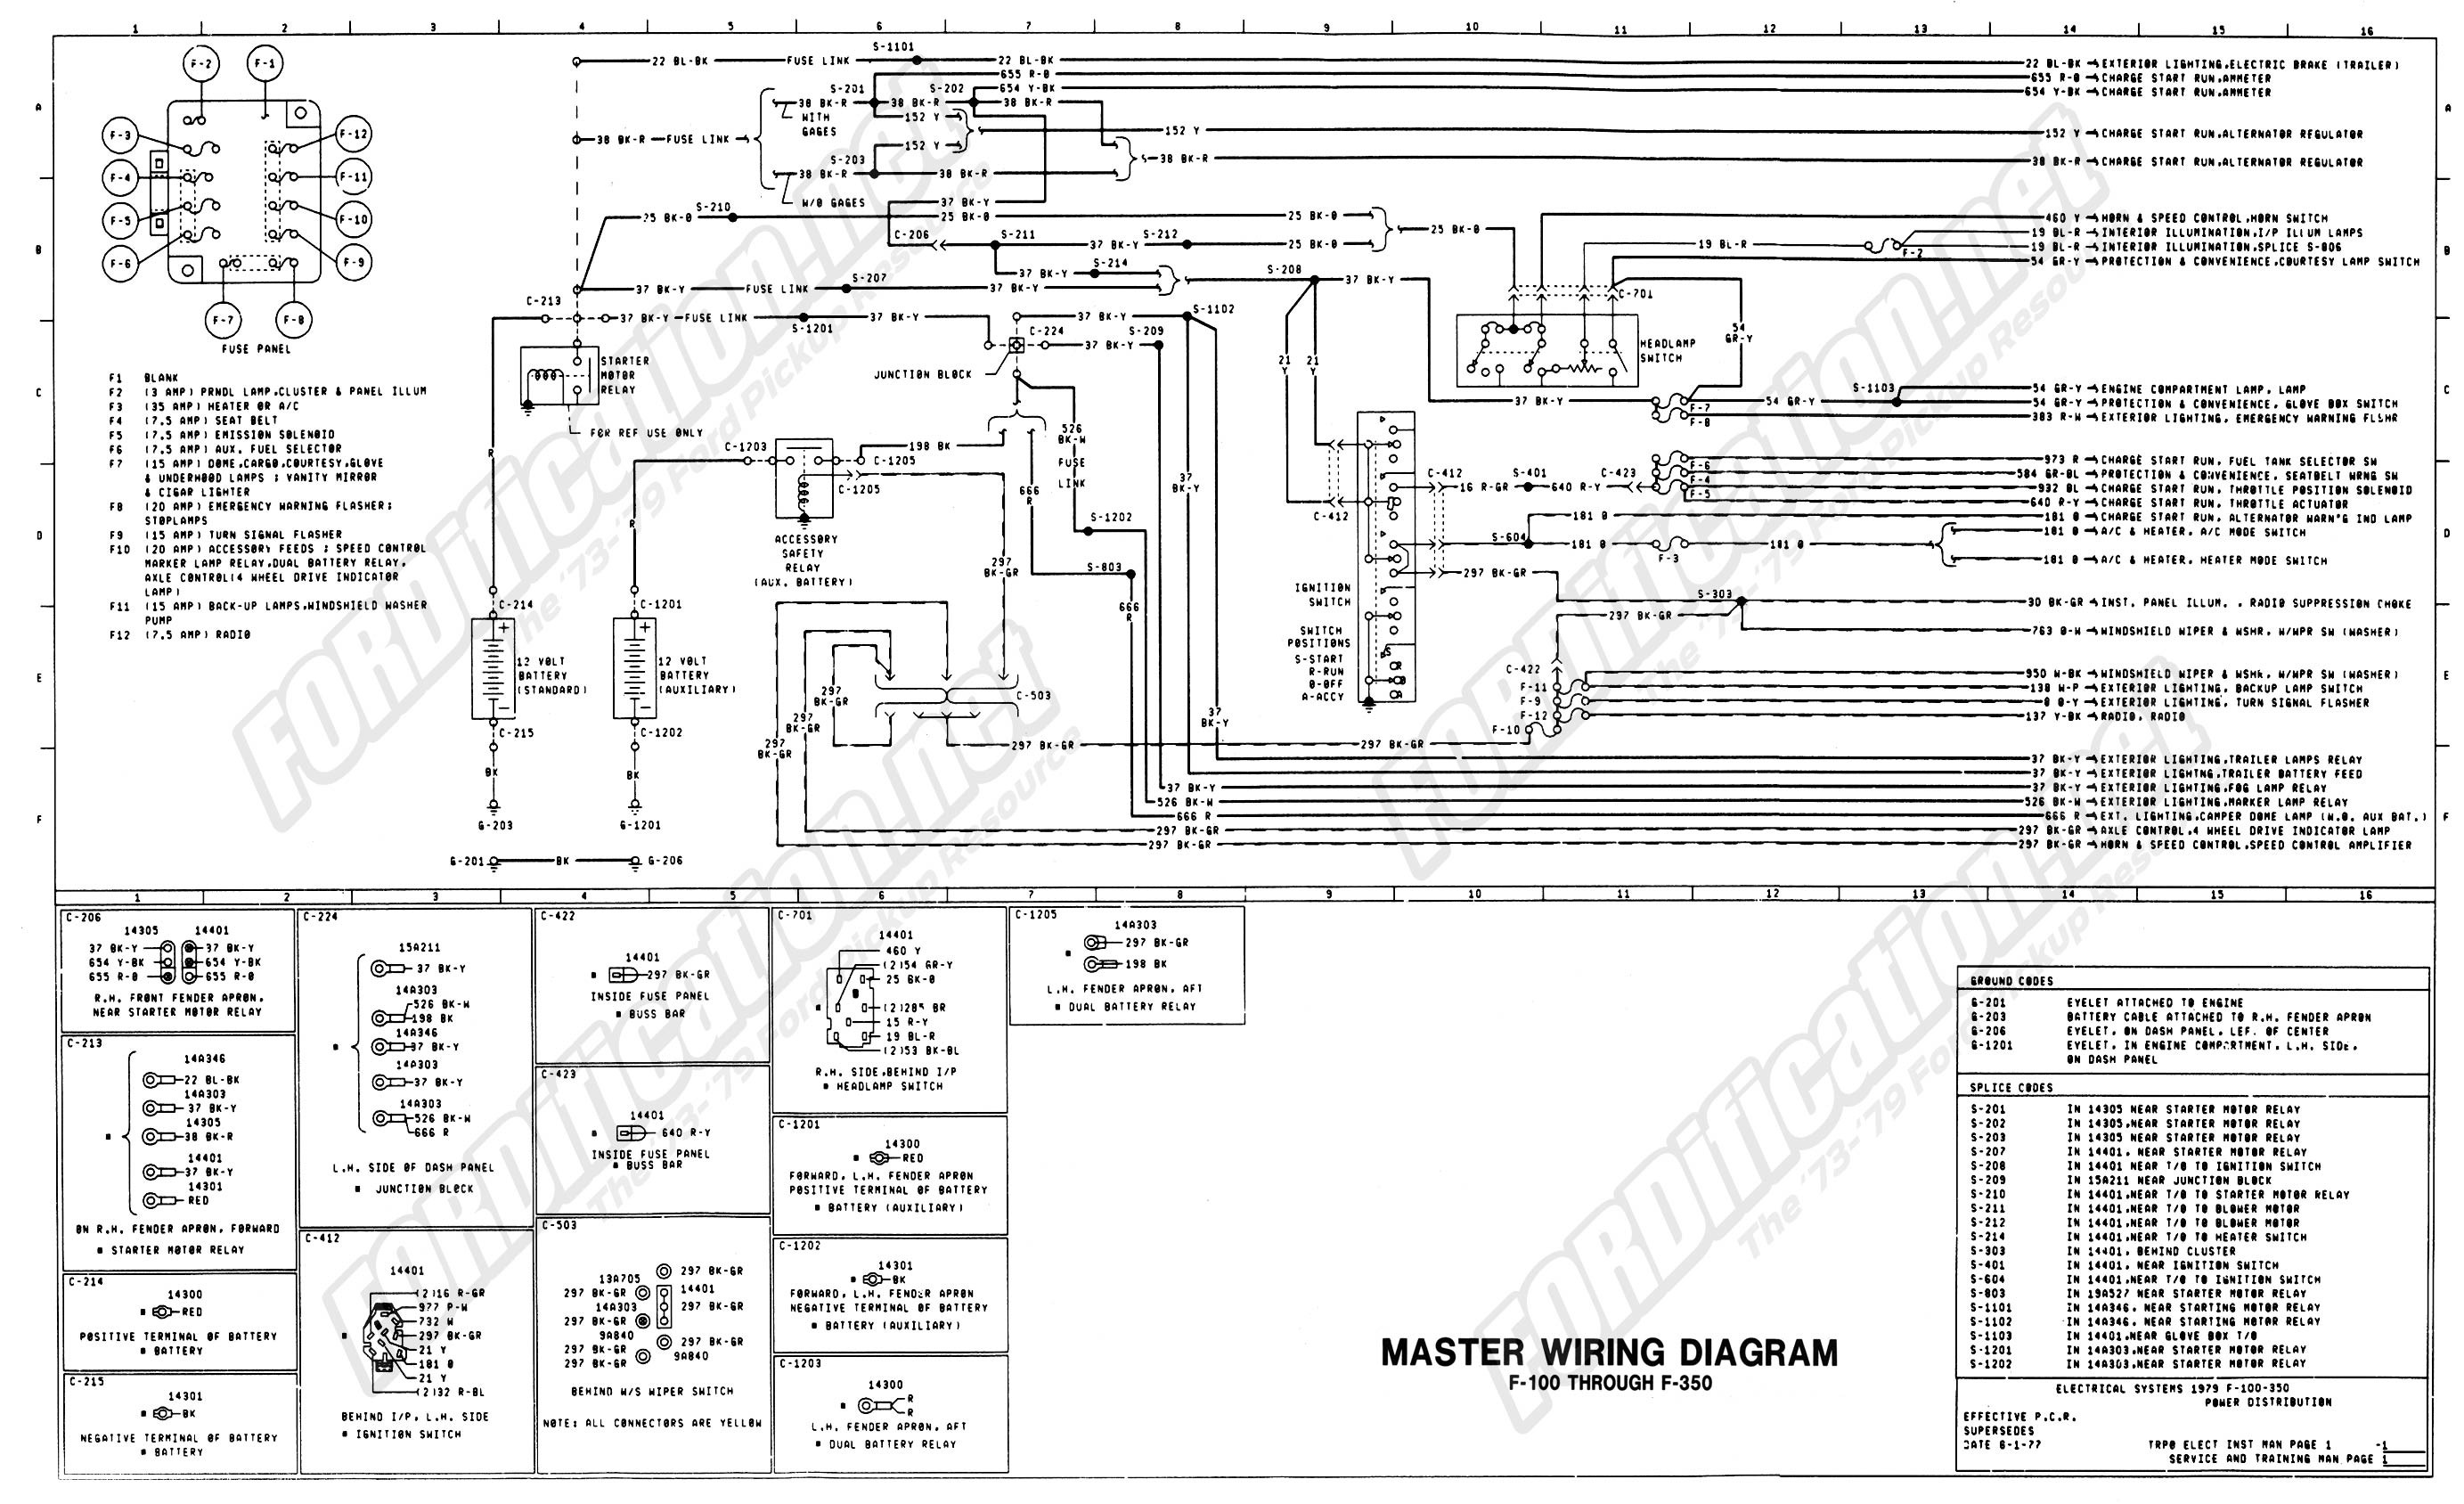 2008 ford Escape Engine Diagram 79 F150 solenoid Wiring Diagram ford Truck Enthusiasts forums